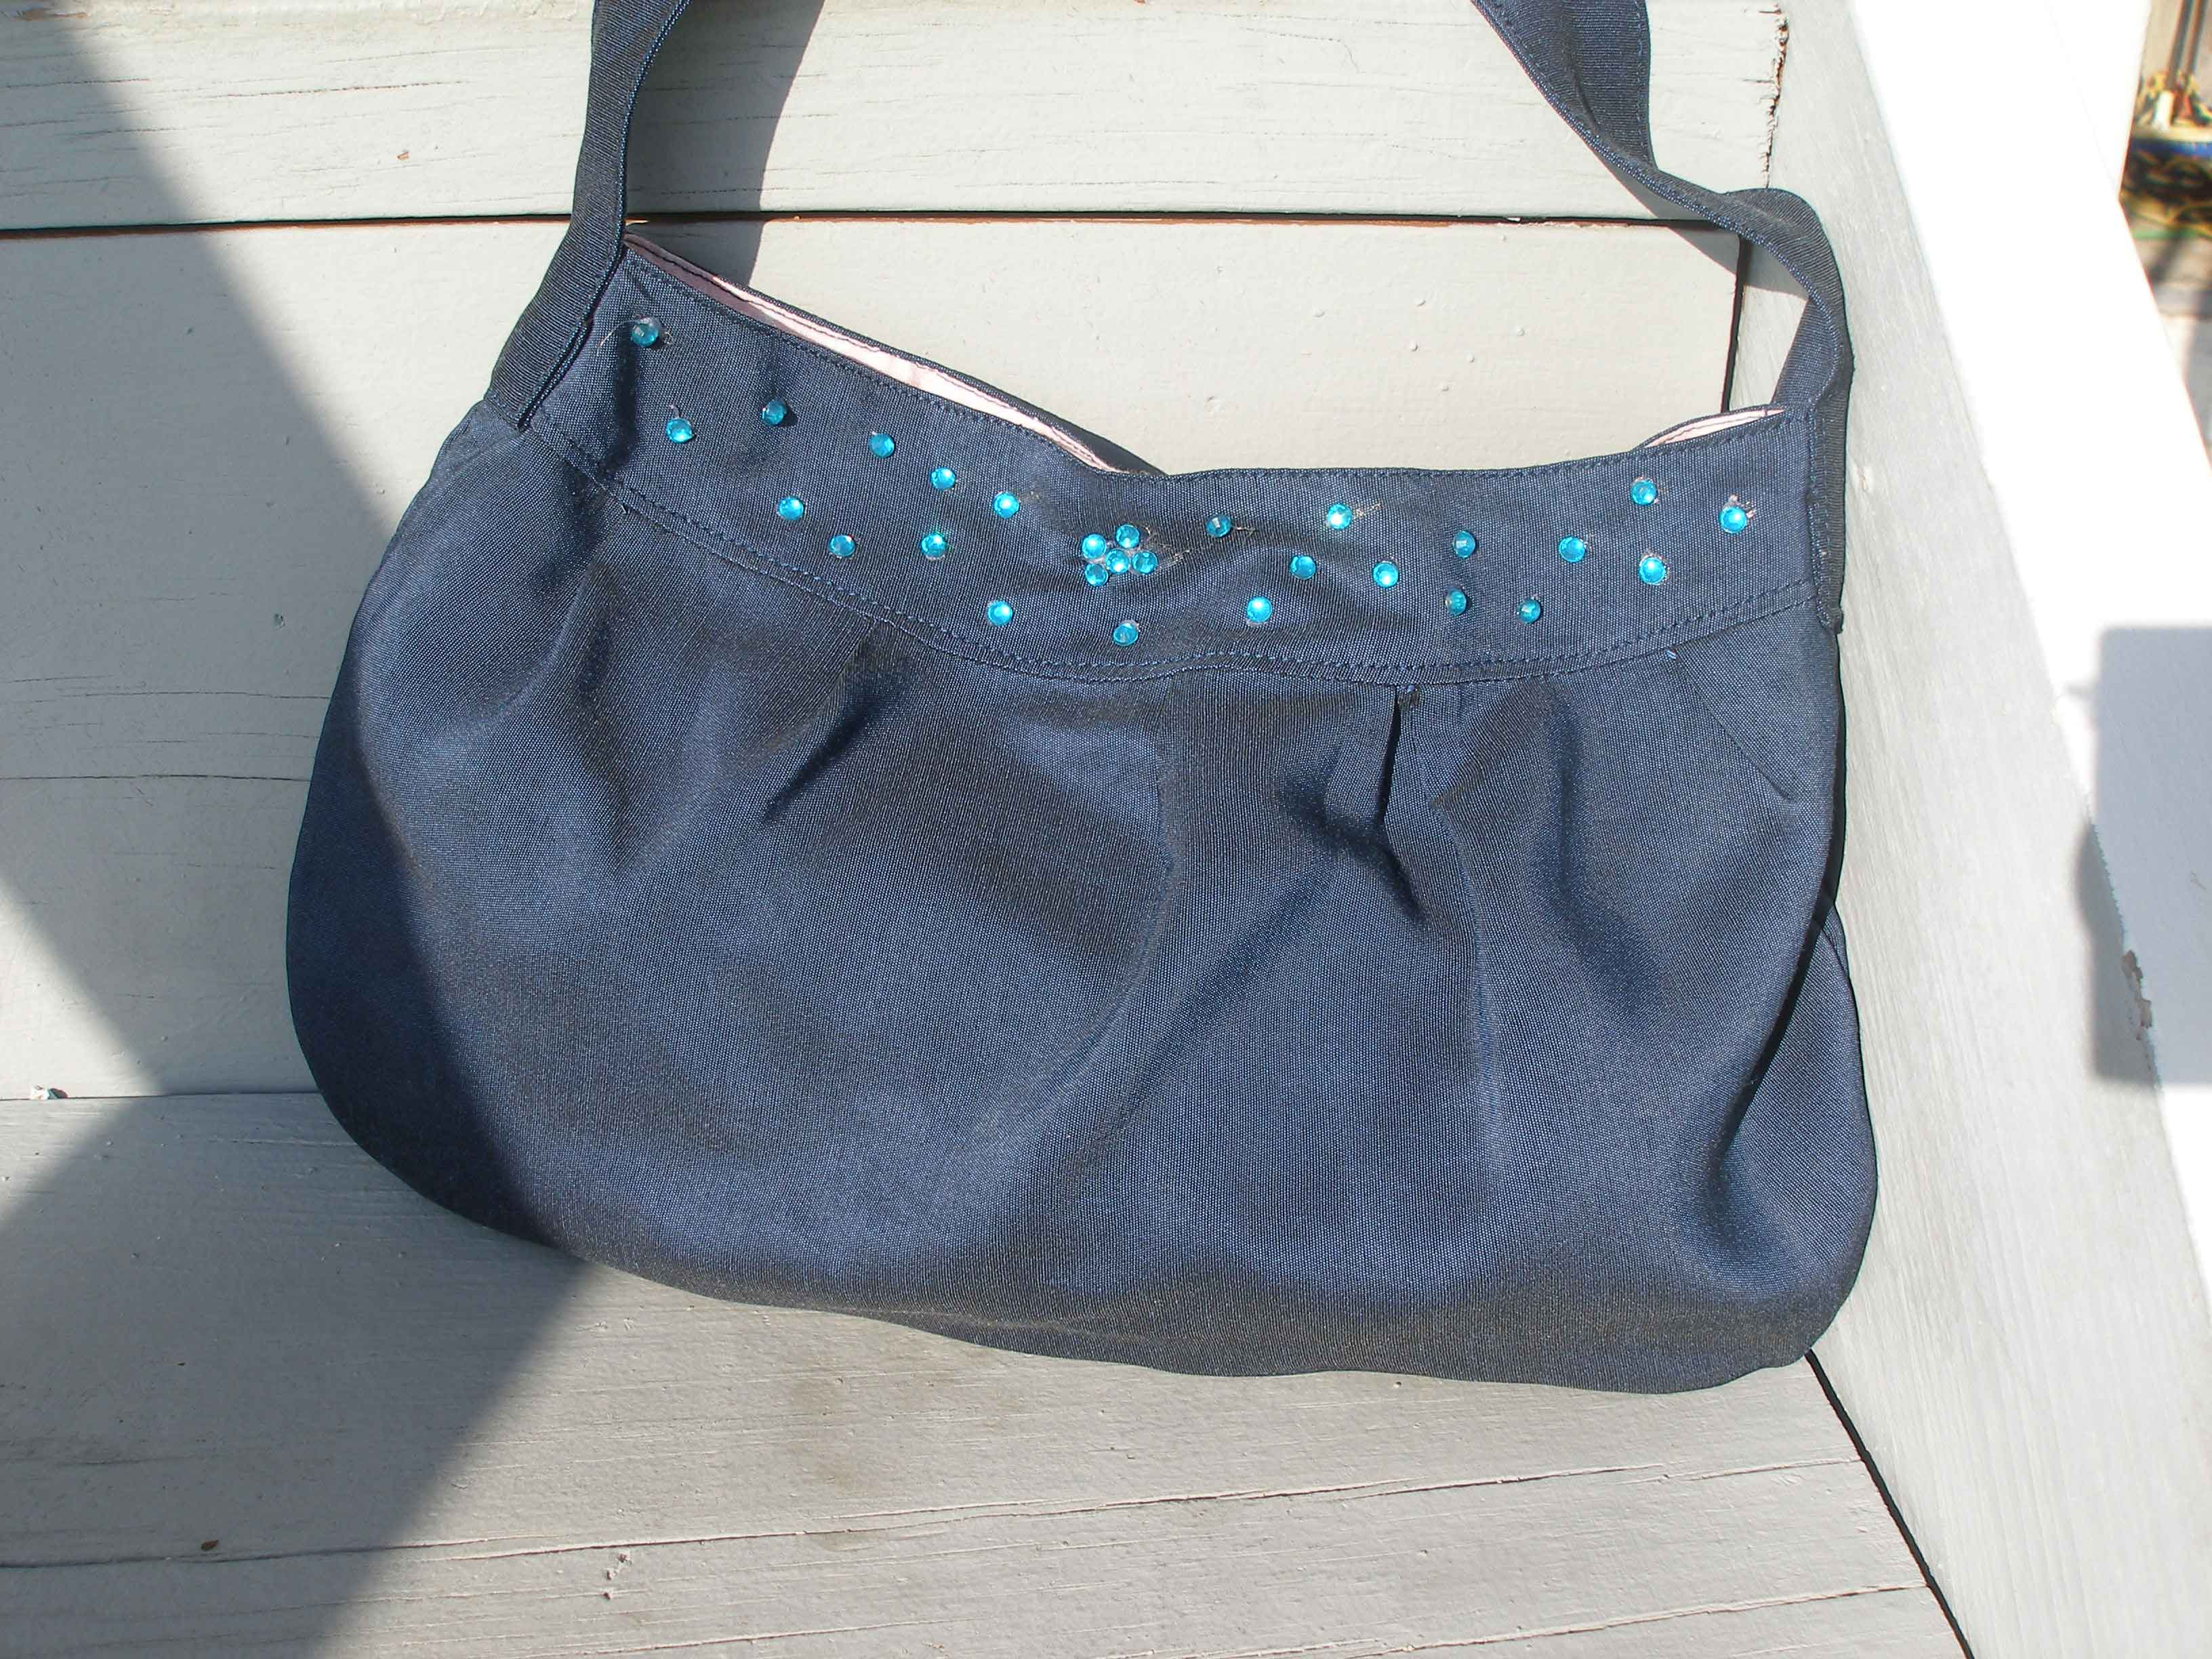 The Blue Bag – a mess of glue and bling